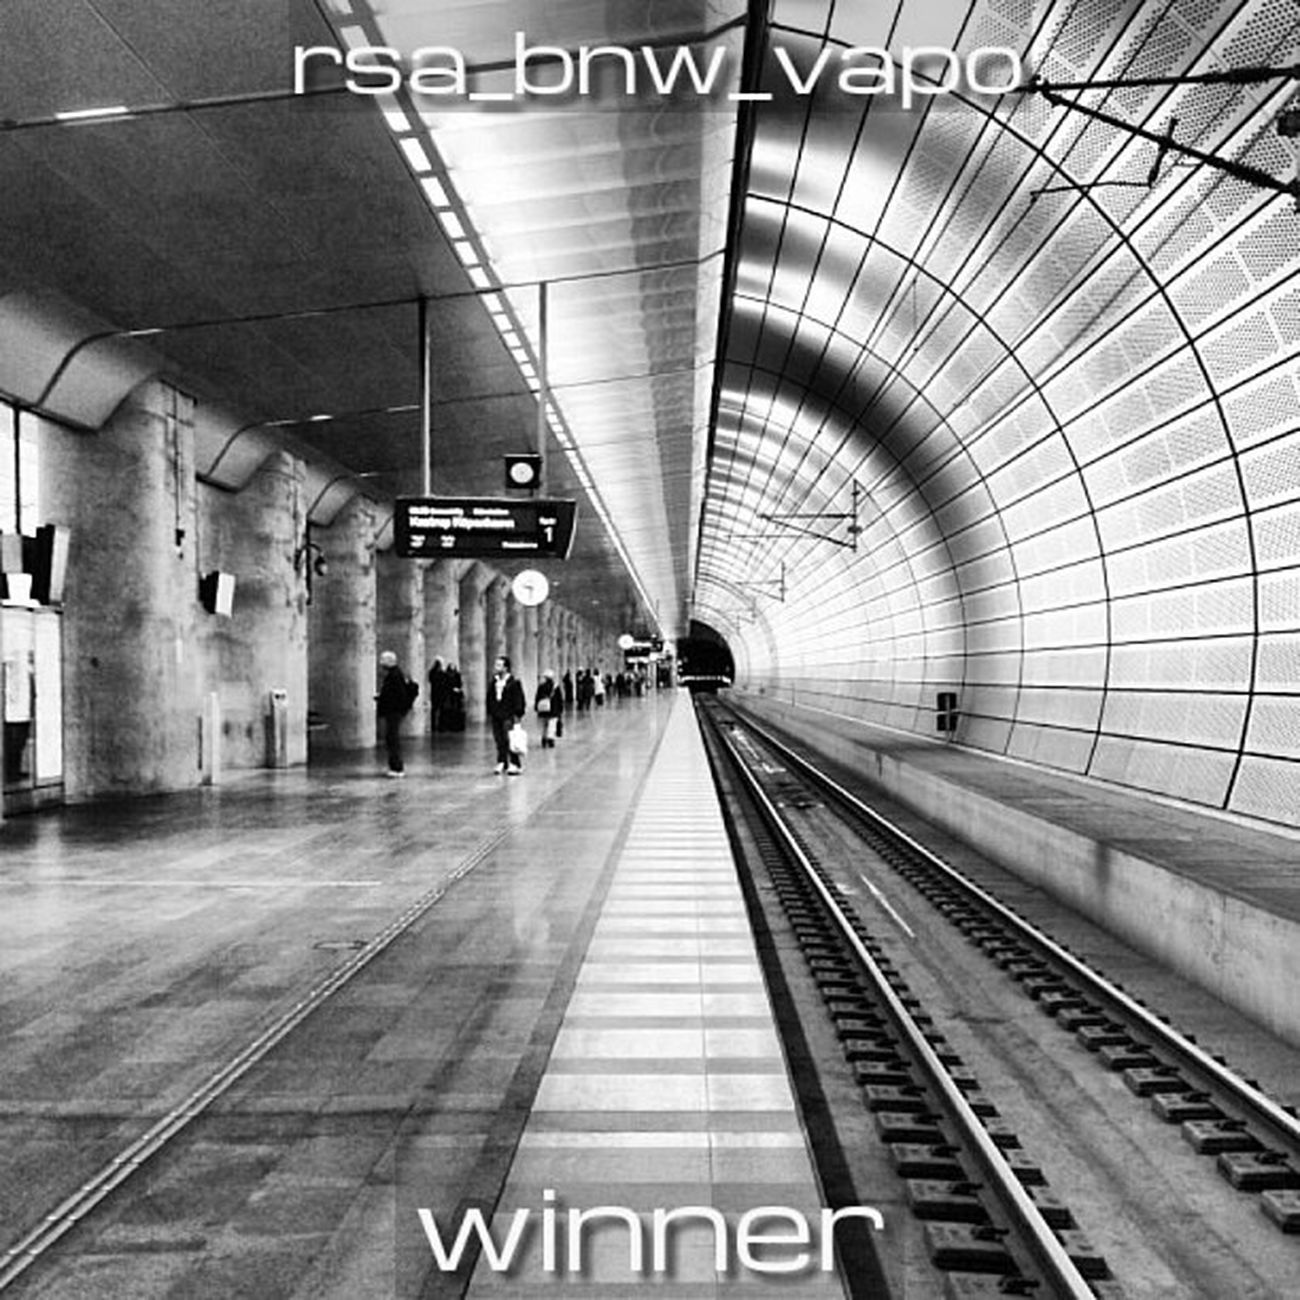 ▪rsa_bnw ▫proudly presents the winner of the #rsa_bnw_vapo (vanishing point) challenge: fam member Rsa_bnw_vapo